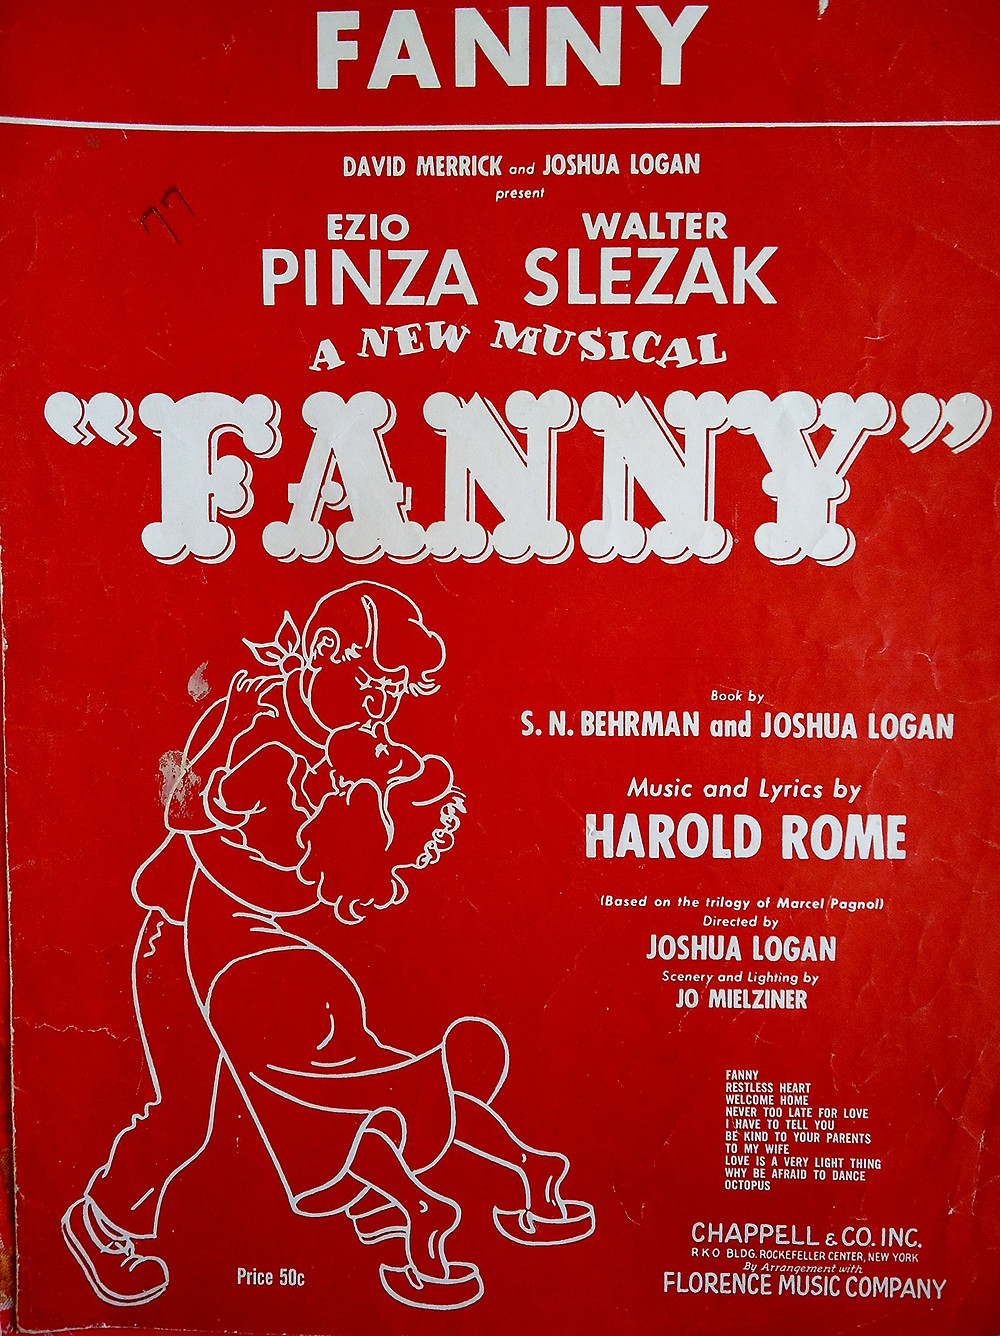 Fanny The Musical